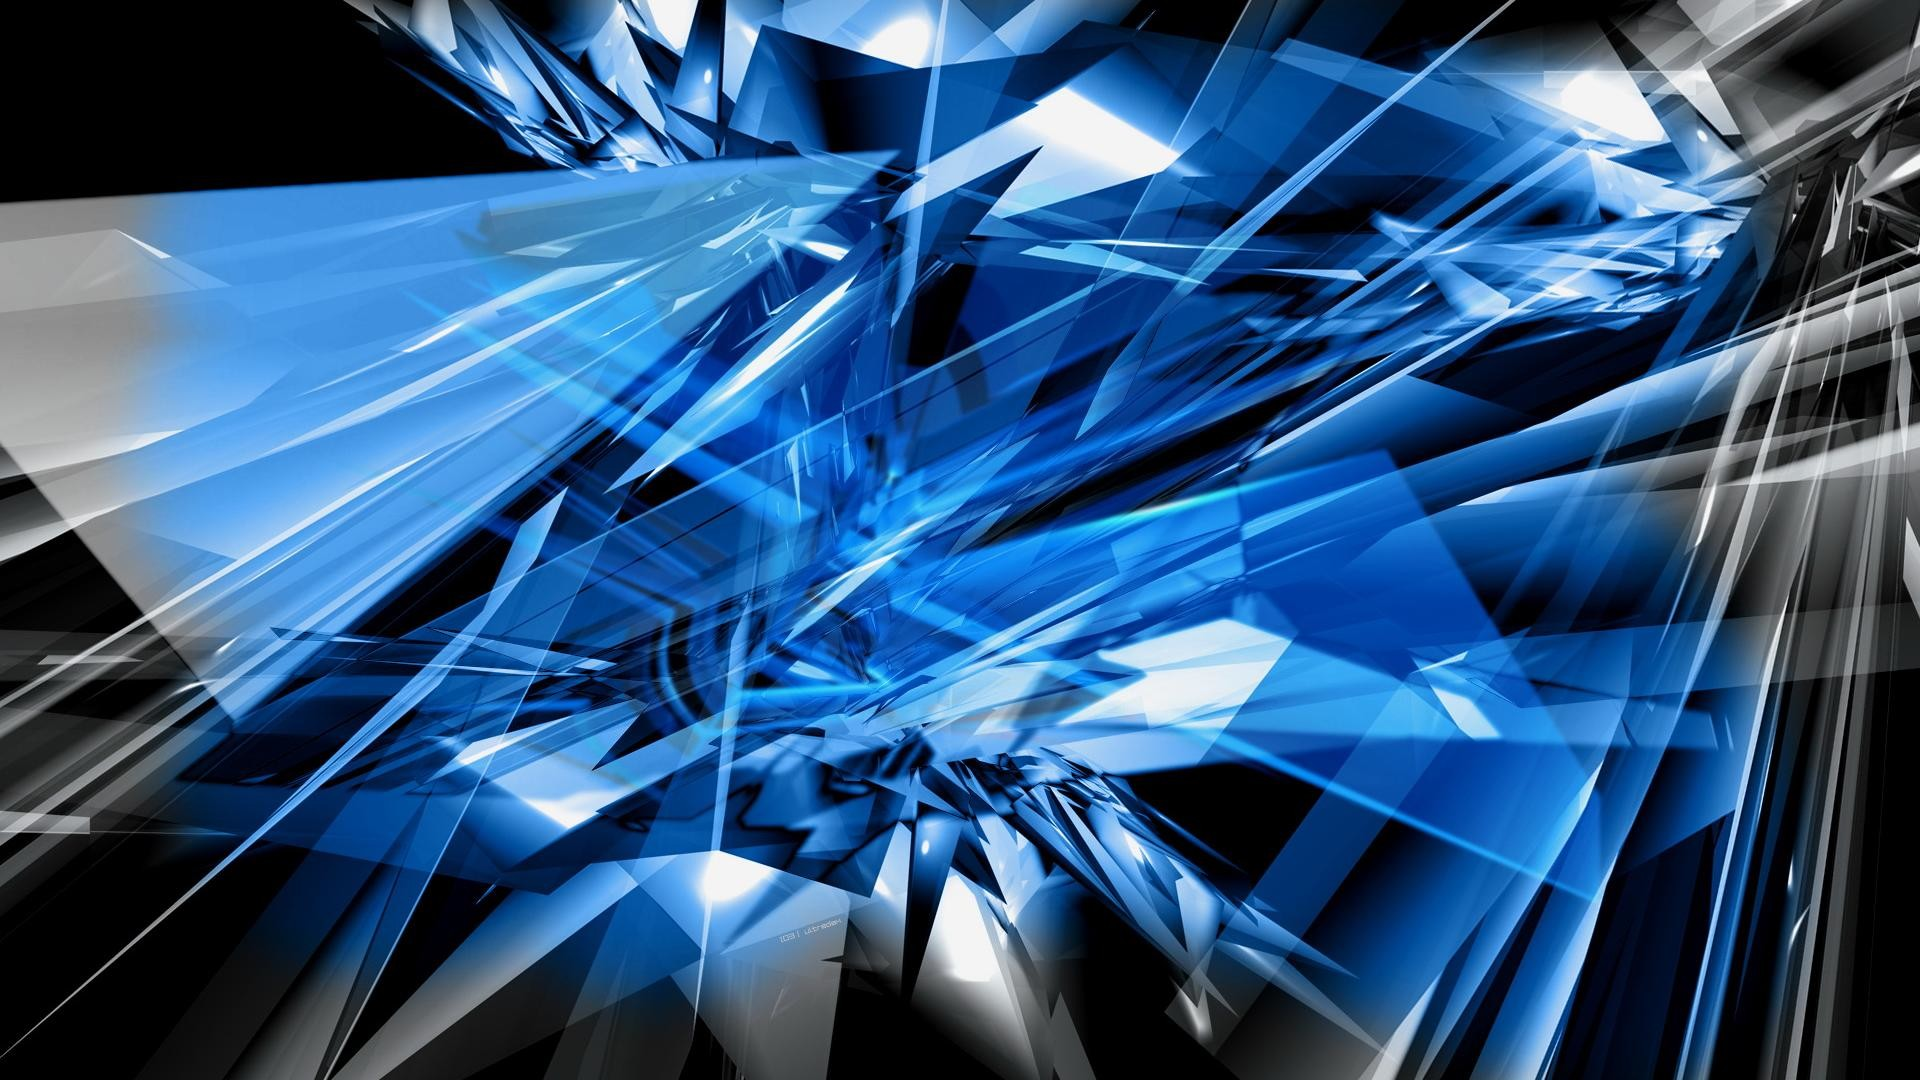 1920x1080 Blue Flower Abstract